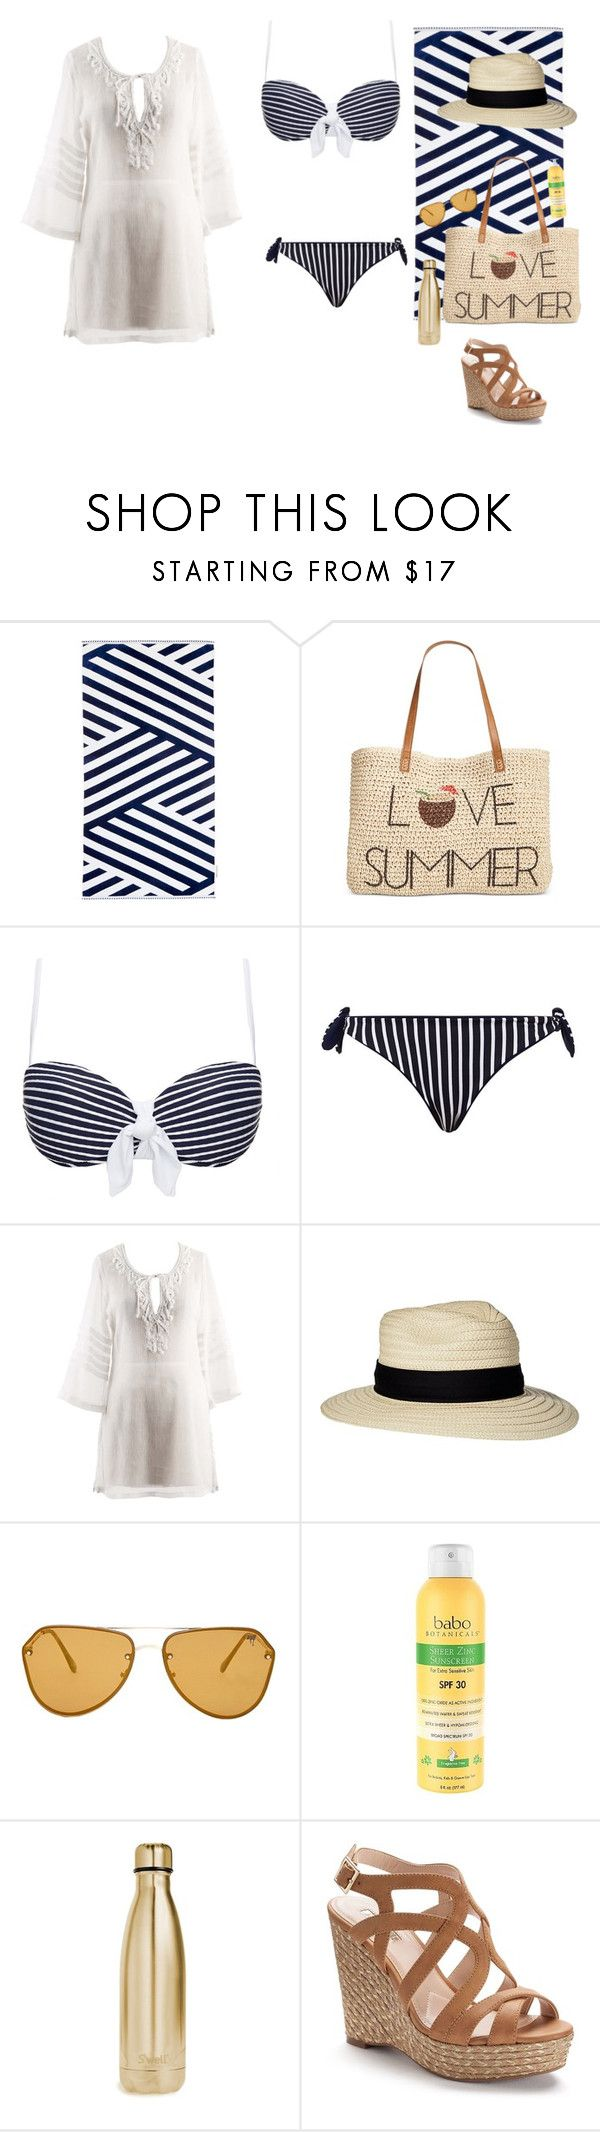 """""""beach yoongi"""" by spam-653 ❤ liked on Polyvore featuring Sunnylife, Style & Co., Heidi Klein, MaxMara, Columbia, Forever 21, Babo Botanicals, S'well and Jennifer Lopez"""